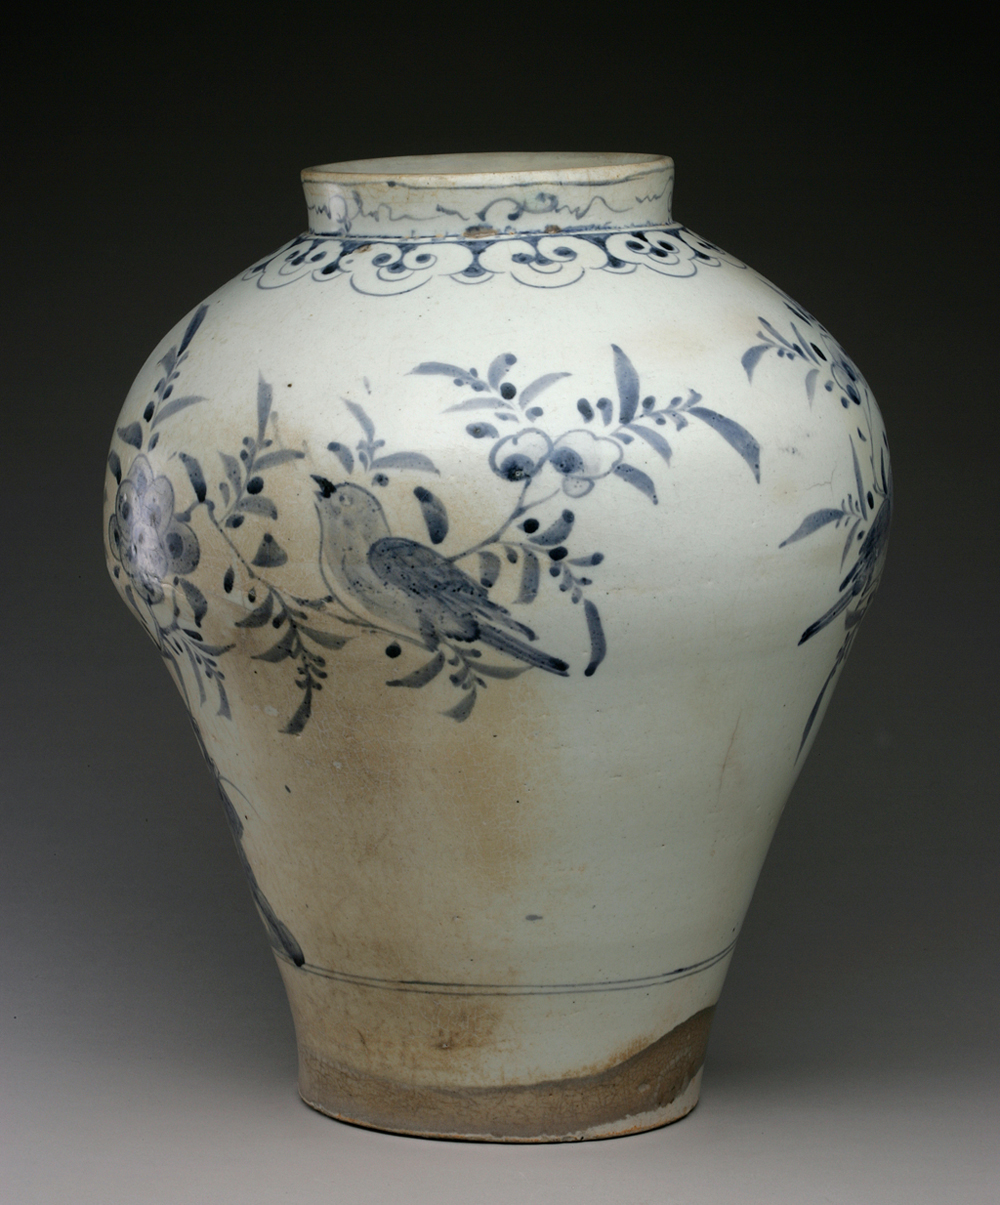 Vase with design of birds, plum blossoms, and rocks